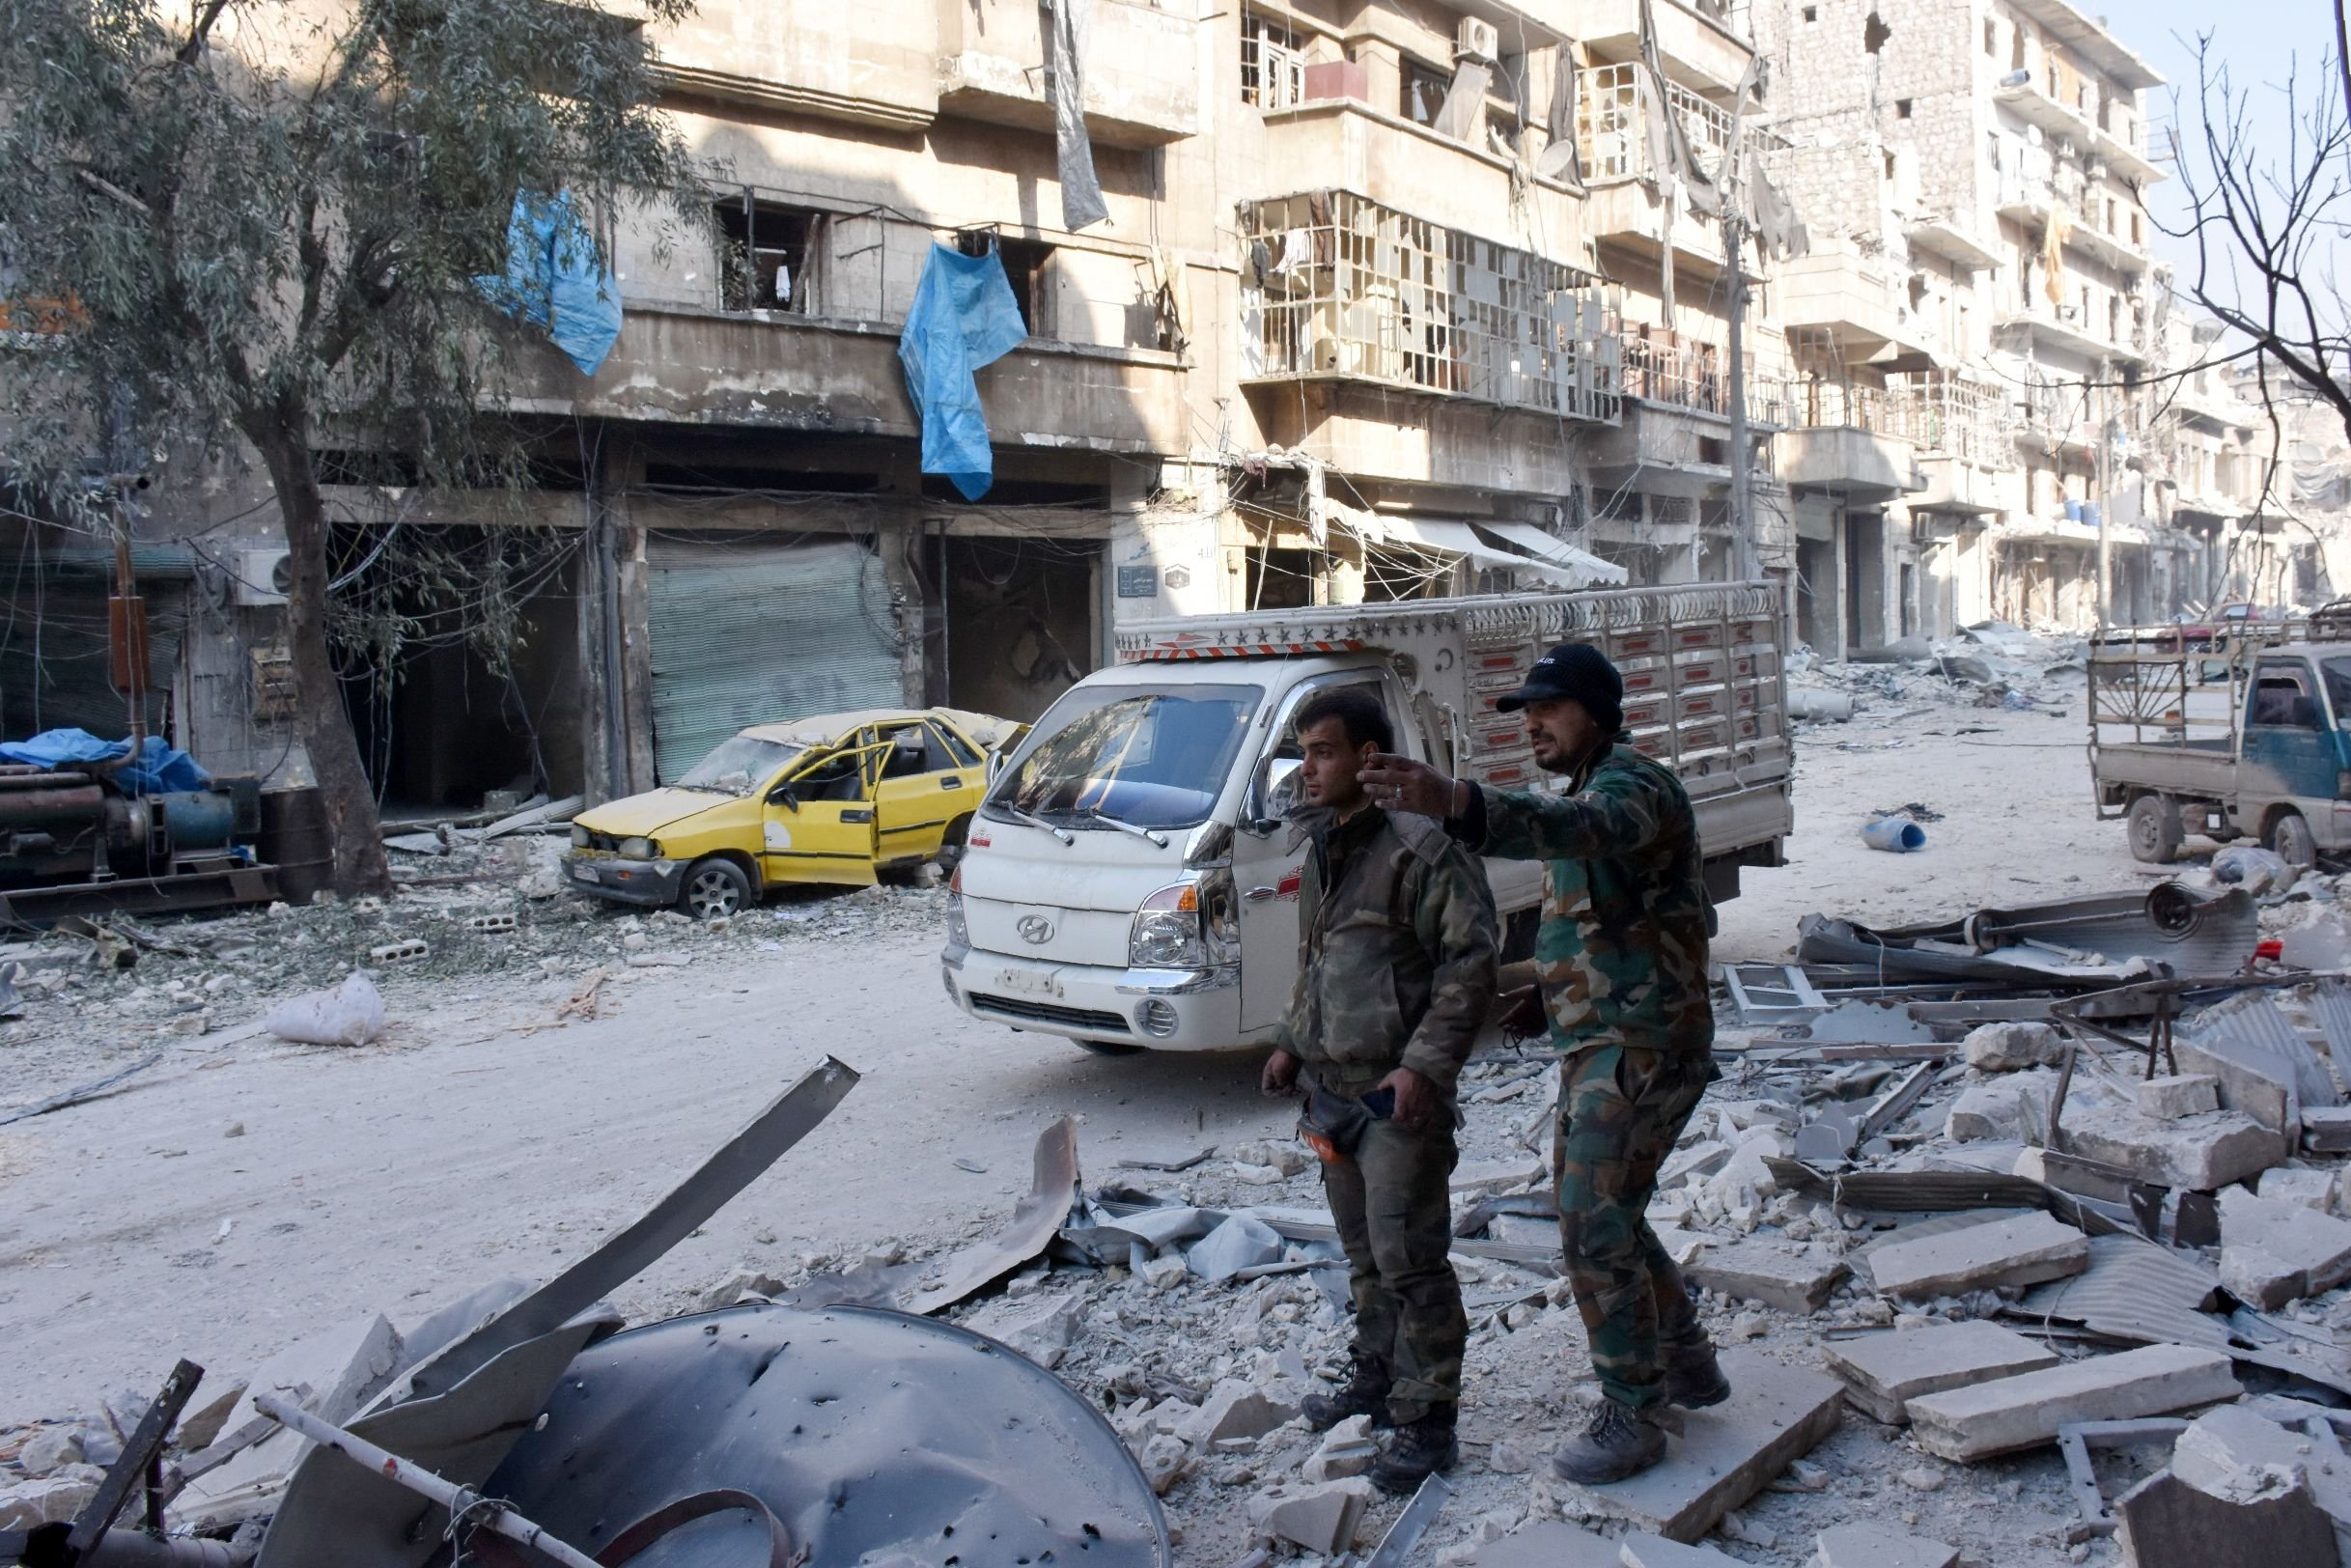 Syrian army now in control of 98% of Aleppo